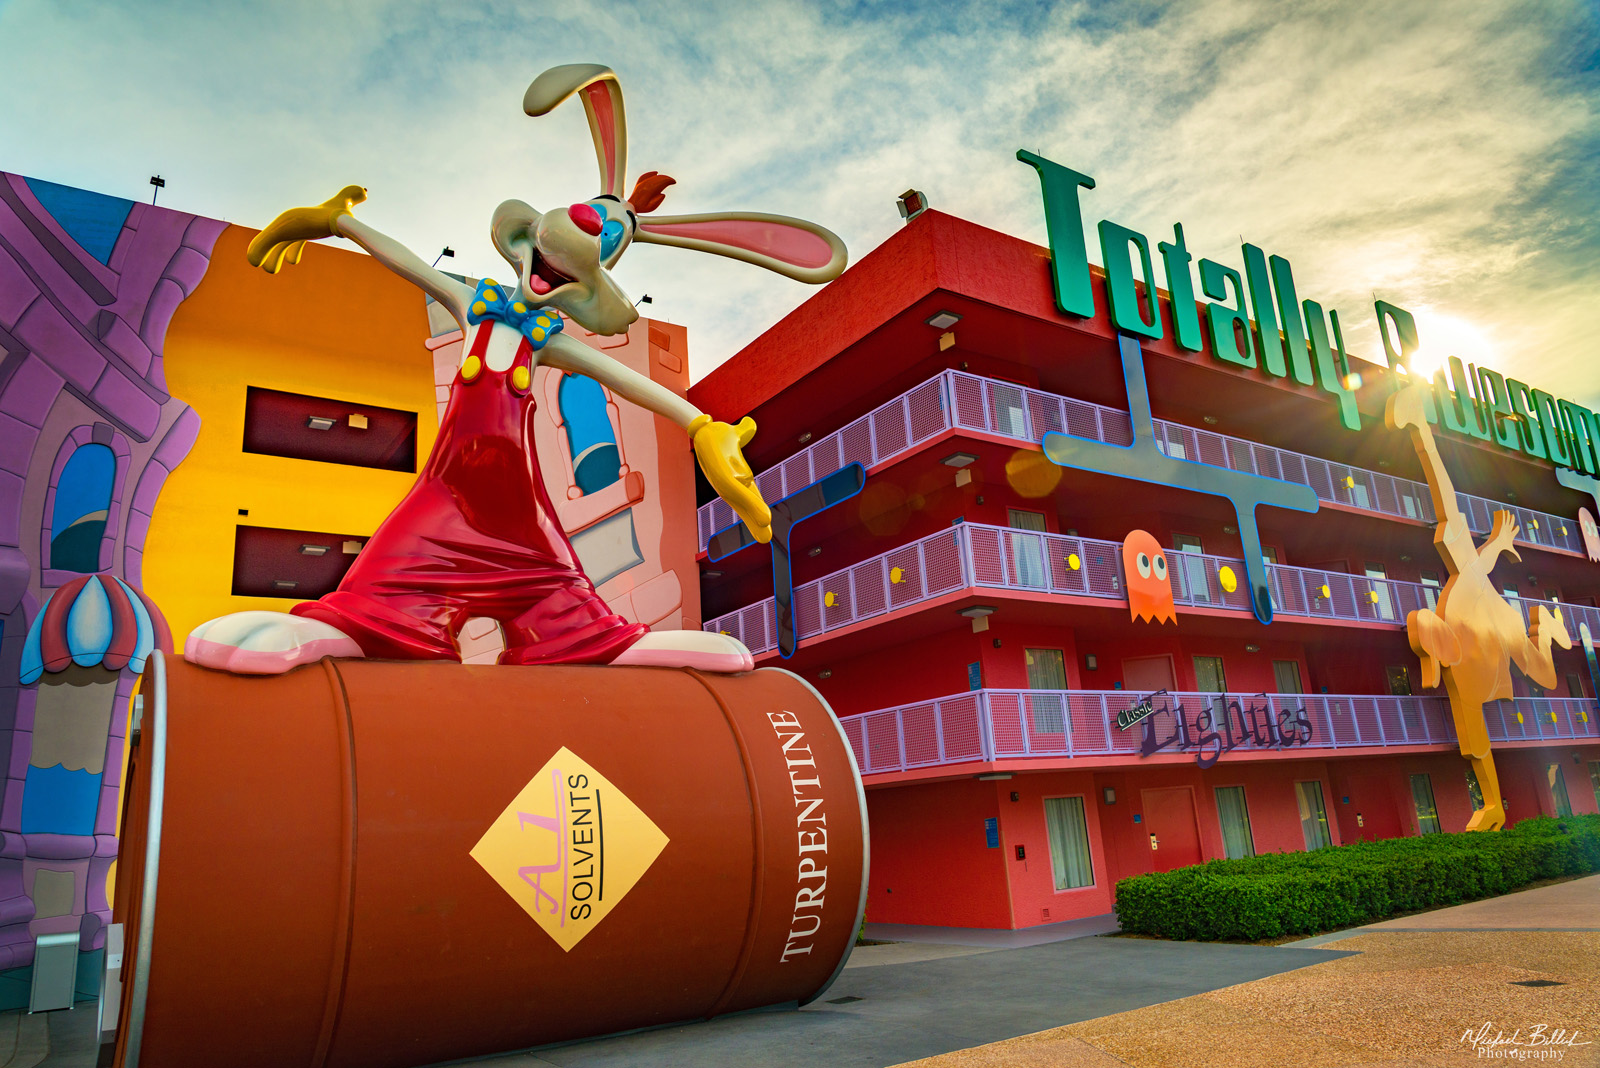 Being a value resort is one of the 5 reasons I love the Pop Century